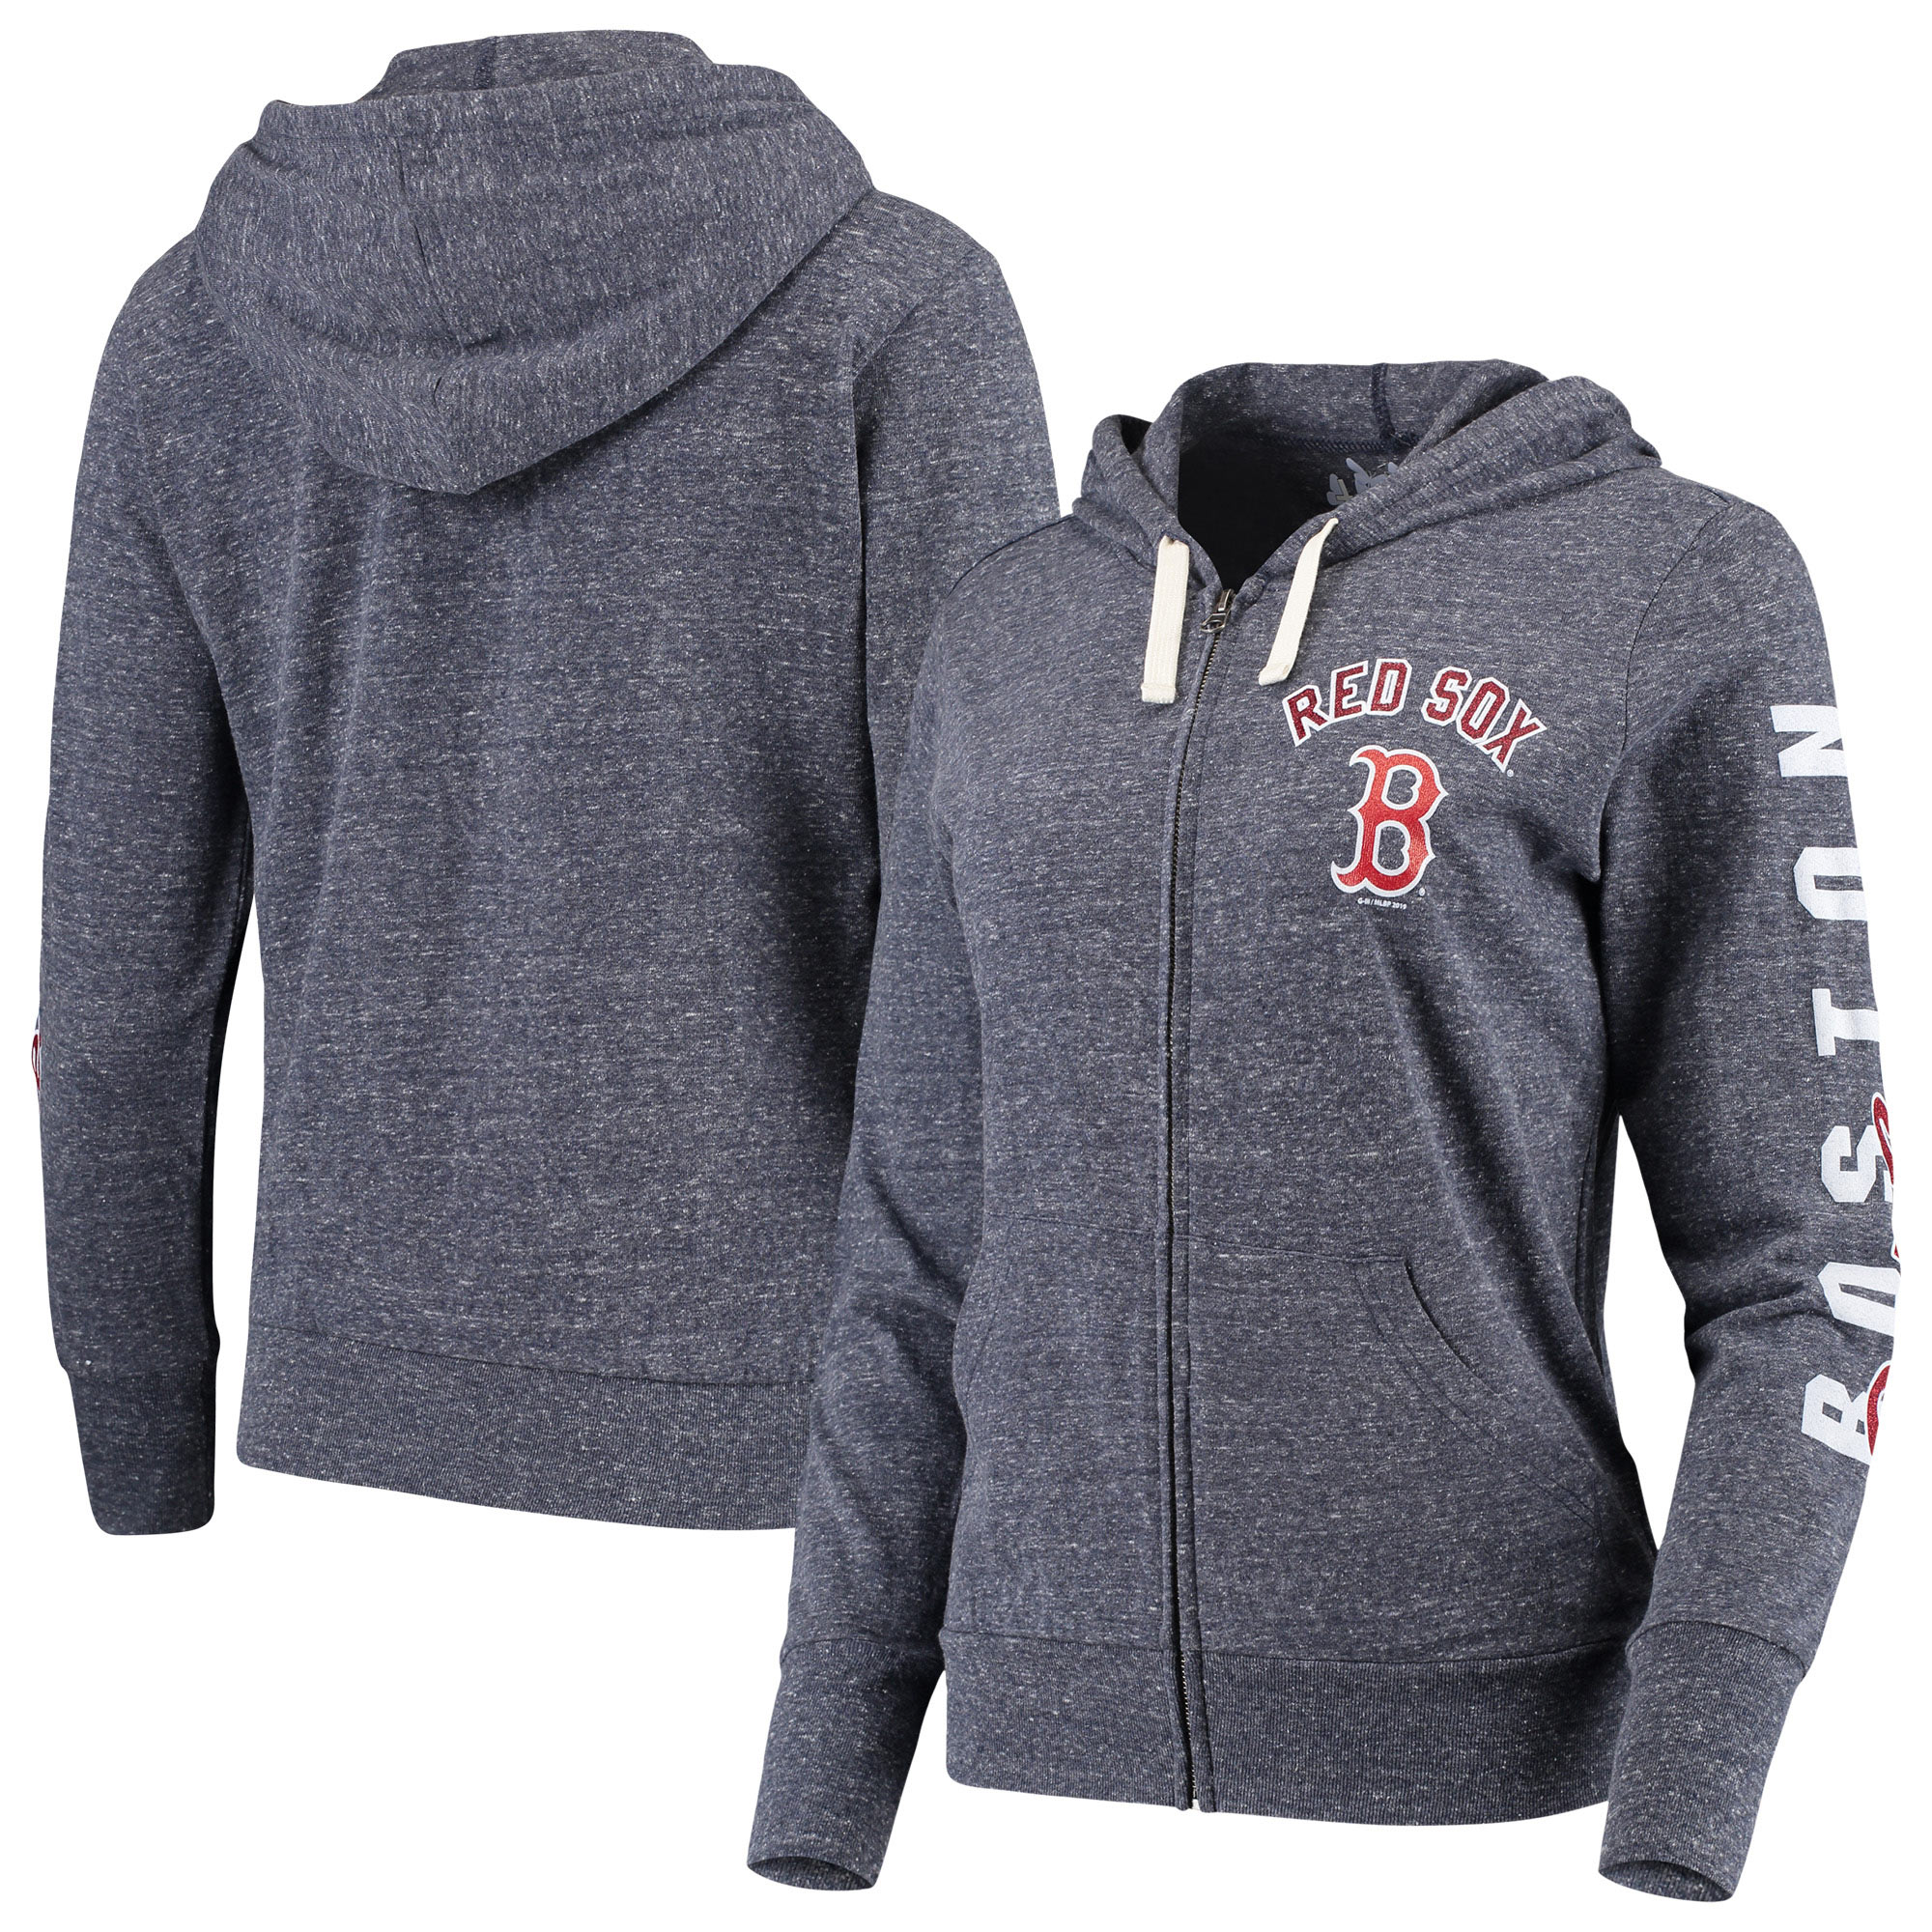 Boston Red Sox Touch by Alyssa Milano Women's Training Camp Hit Tri-Blend Full-Zip Hoodie - Heathered Navy